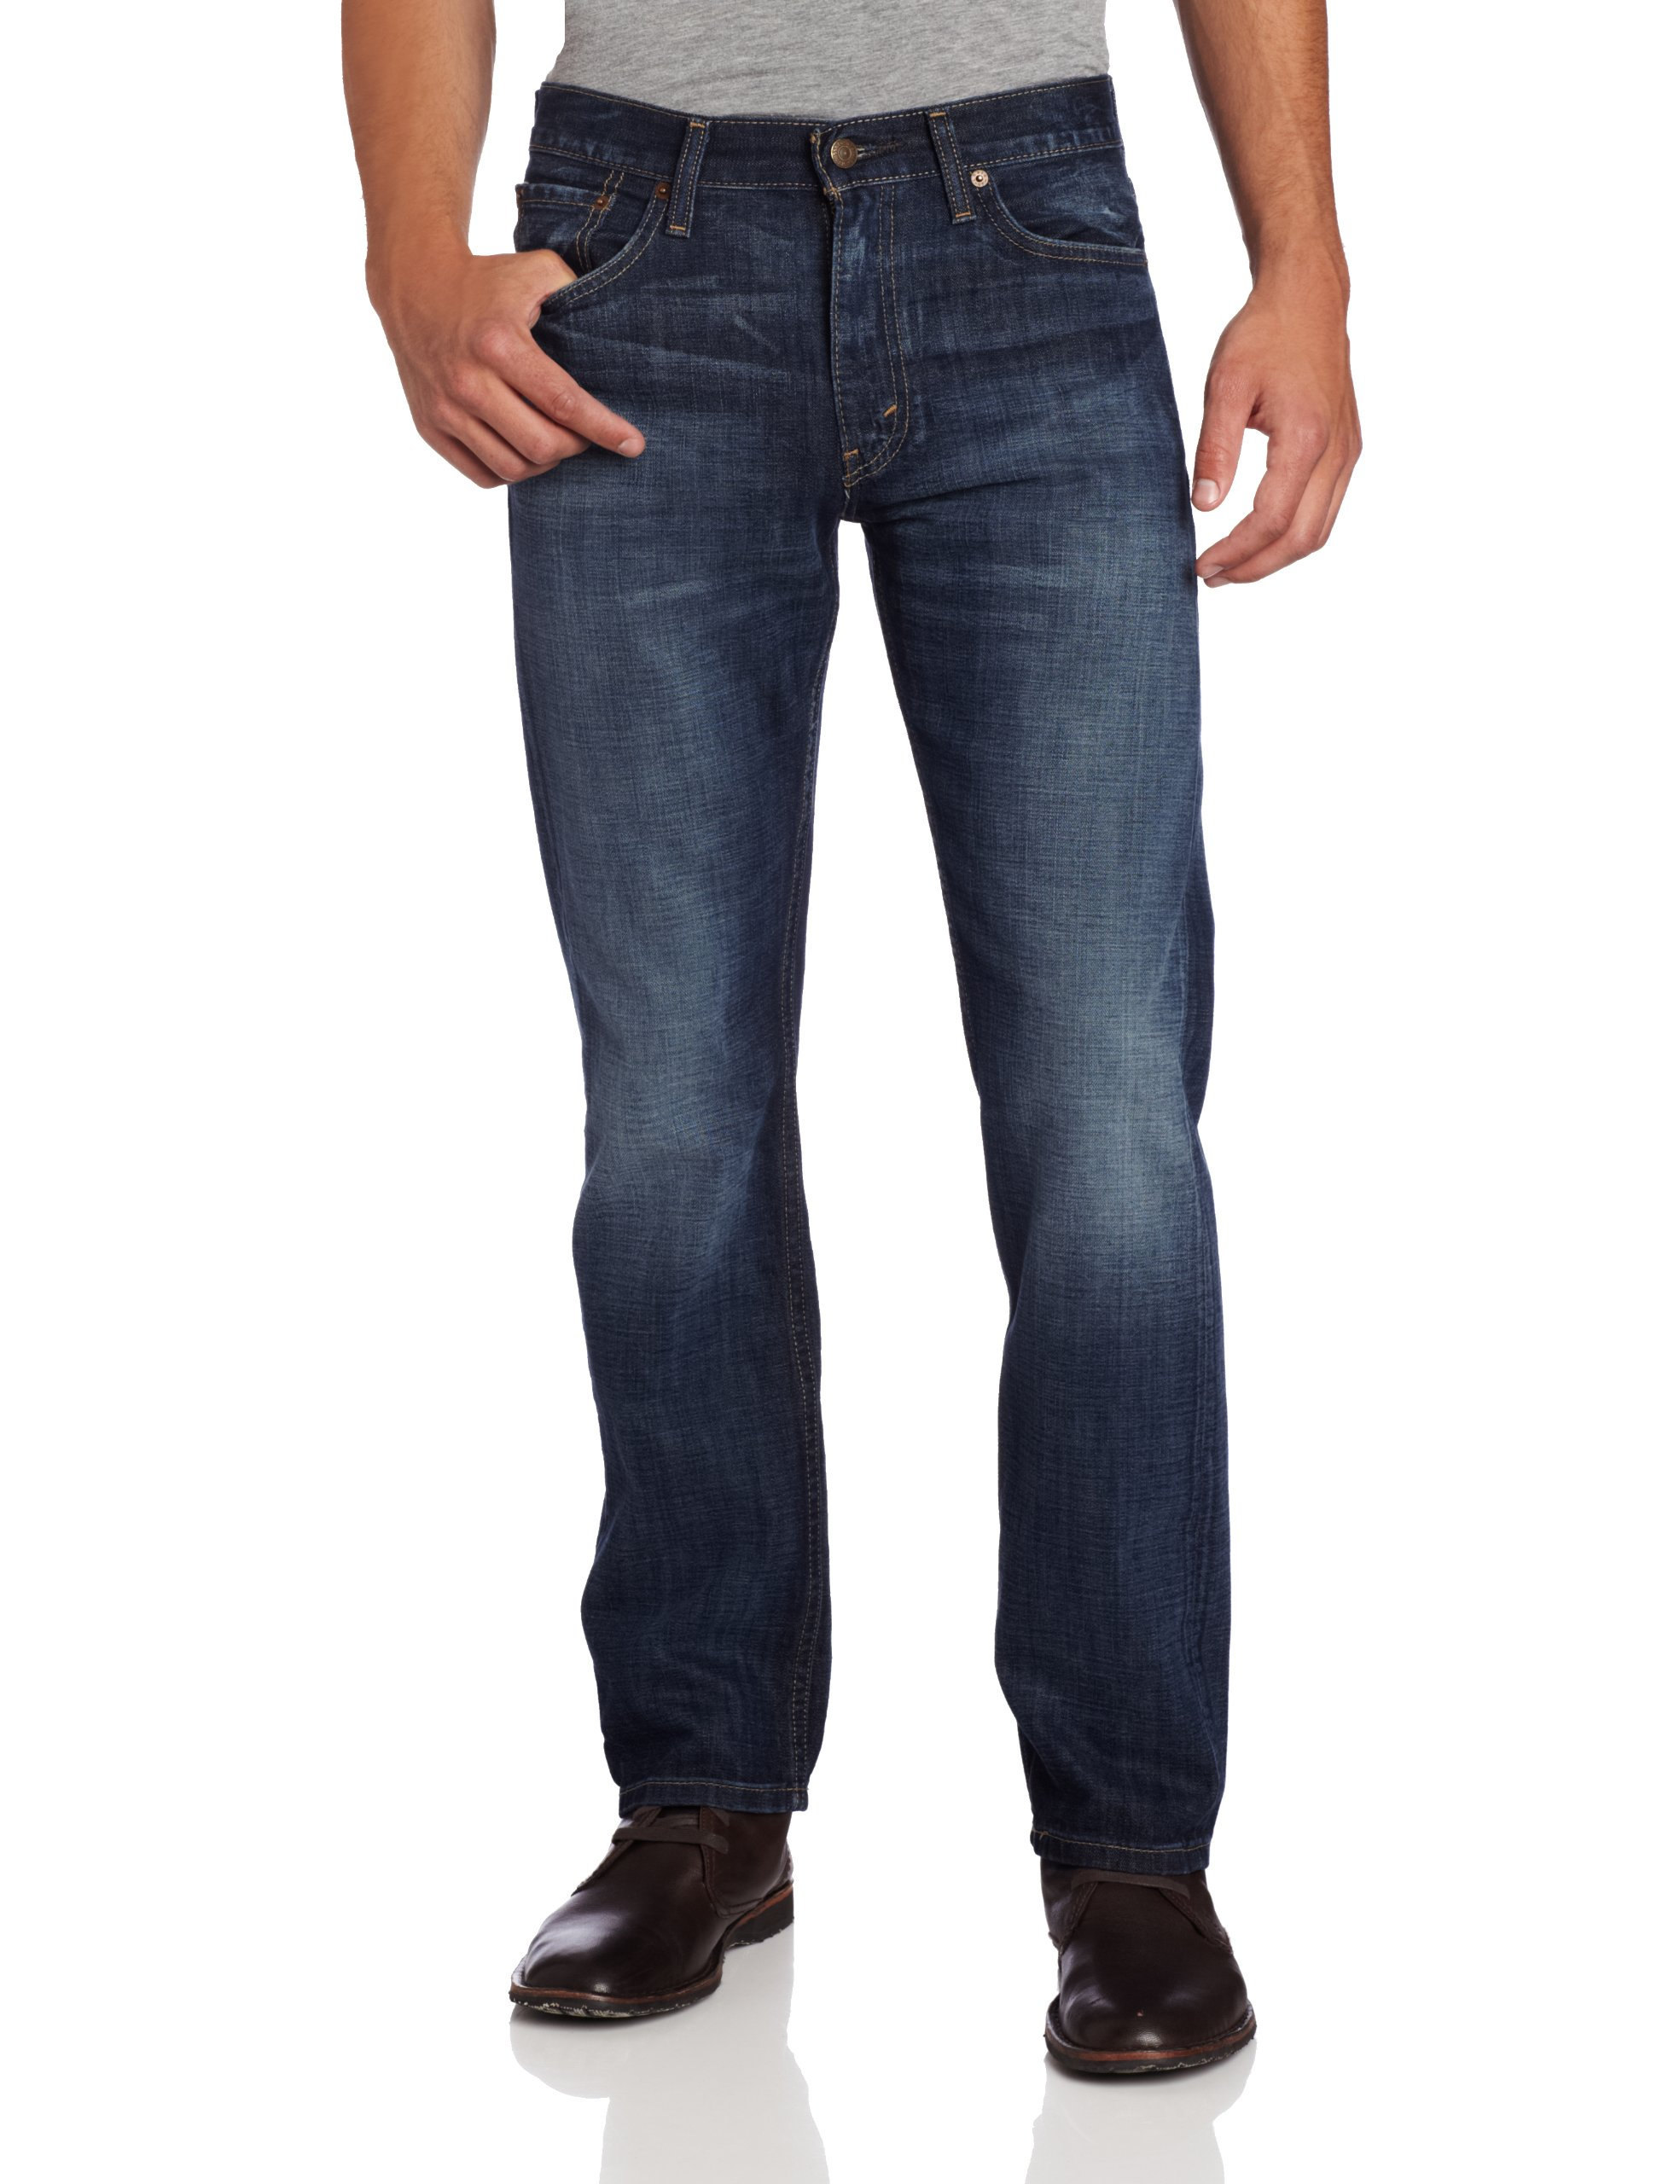 One such style of men's jeans is straight leg jeans. Straight leg jeans are just what they sound like: jeans that are straight from the thigh all the way down to the leg opening. Where skinny jeans and slim fit jeans taper and get narrower around the calves and ankles, straight jeans do not.